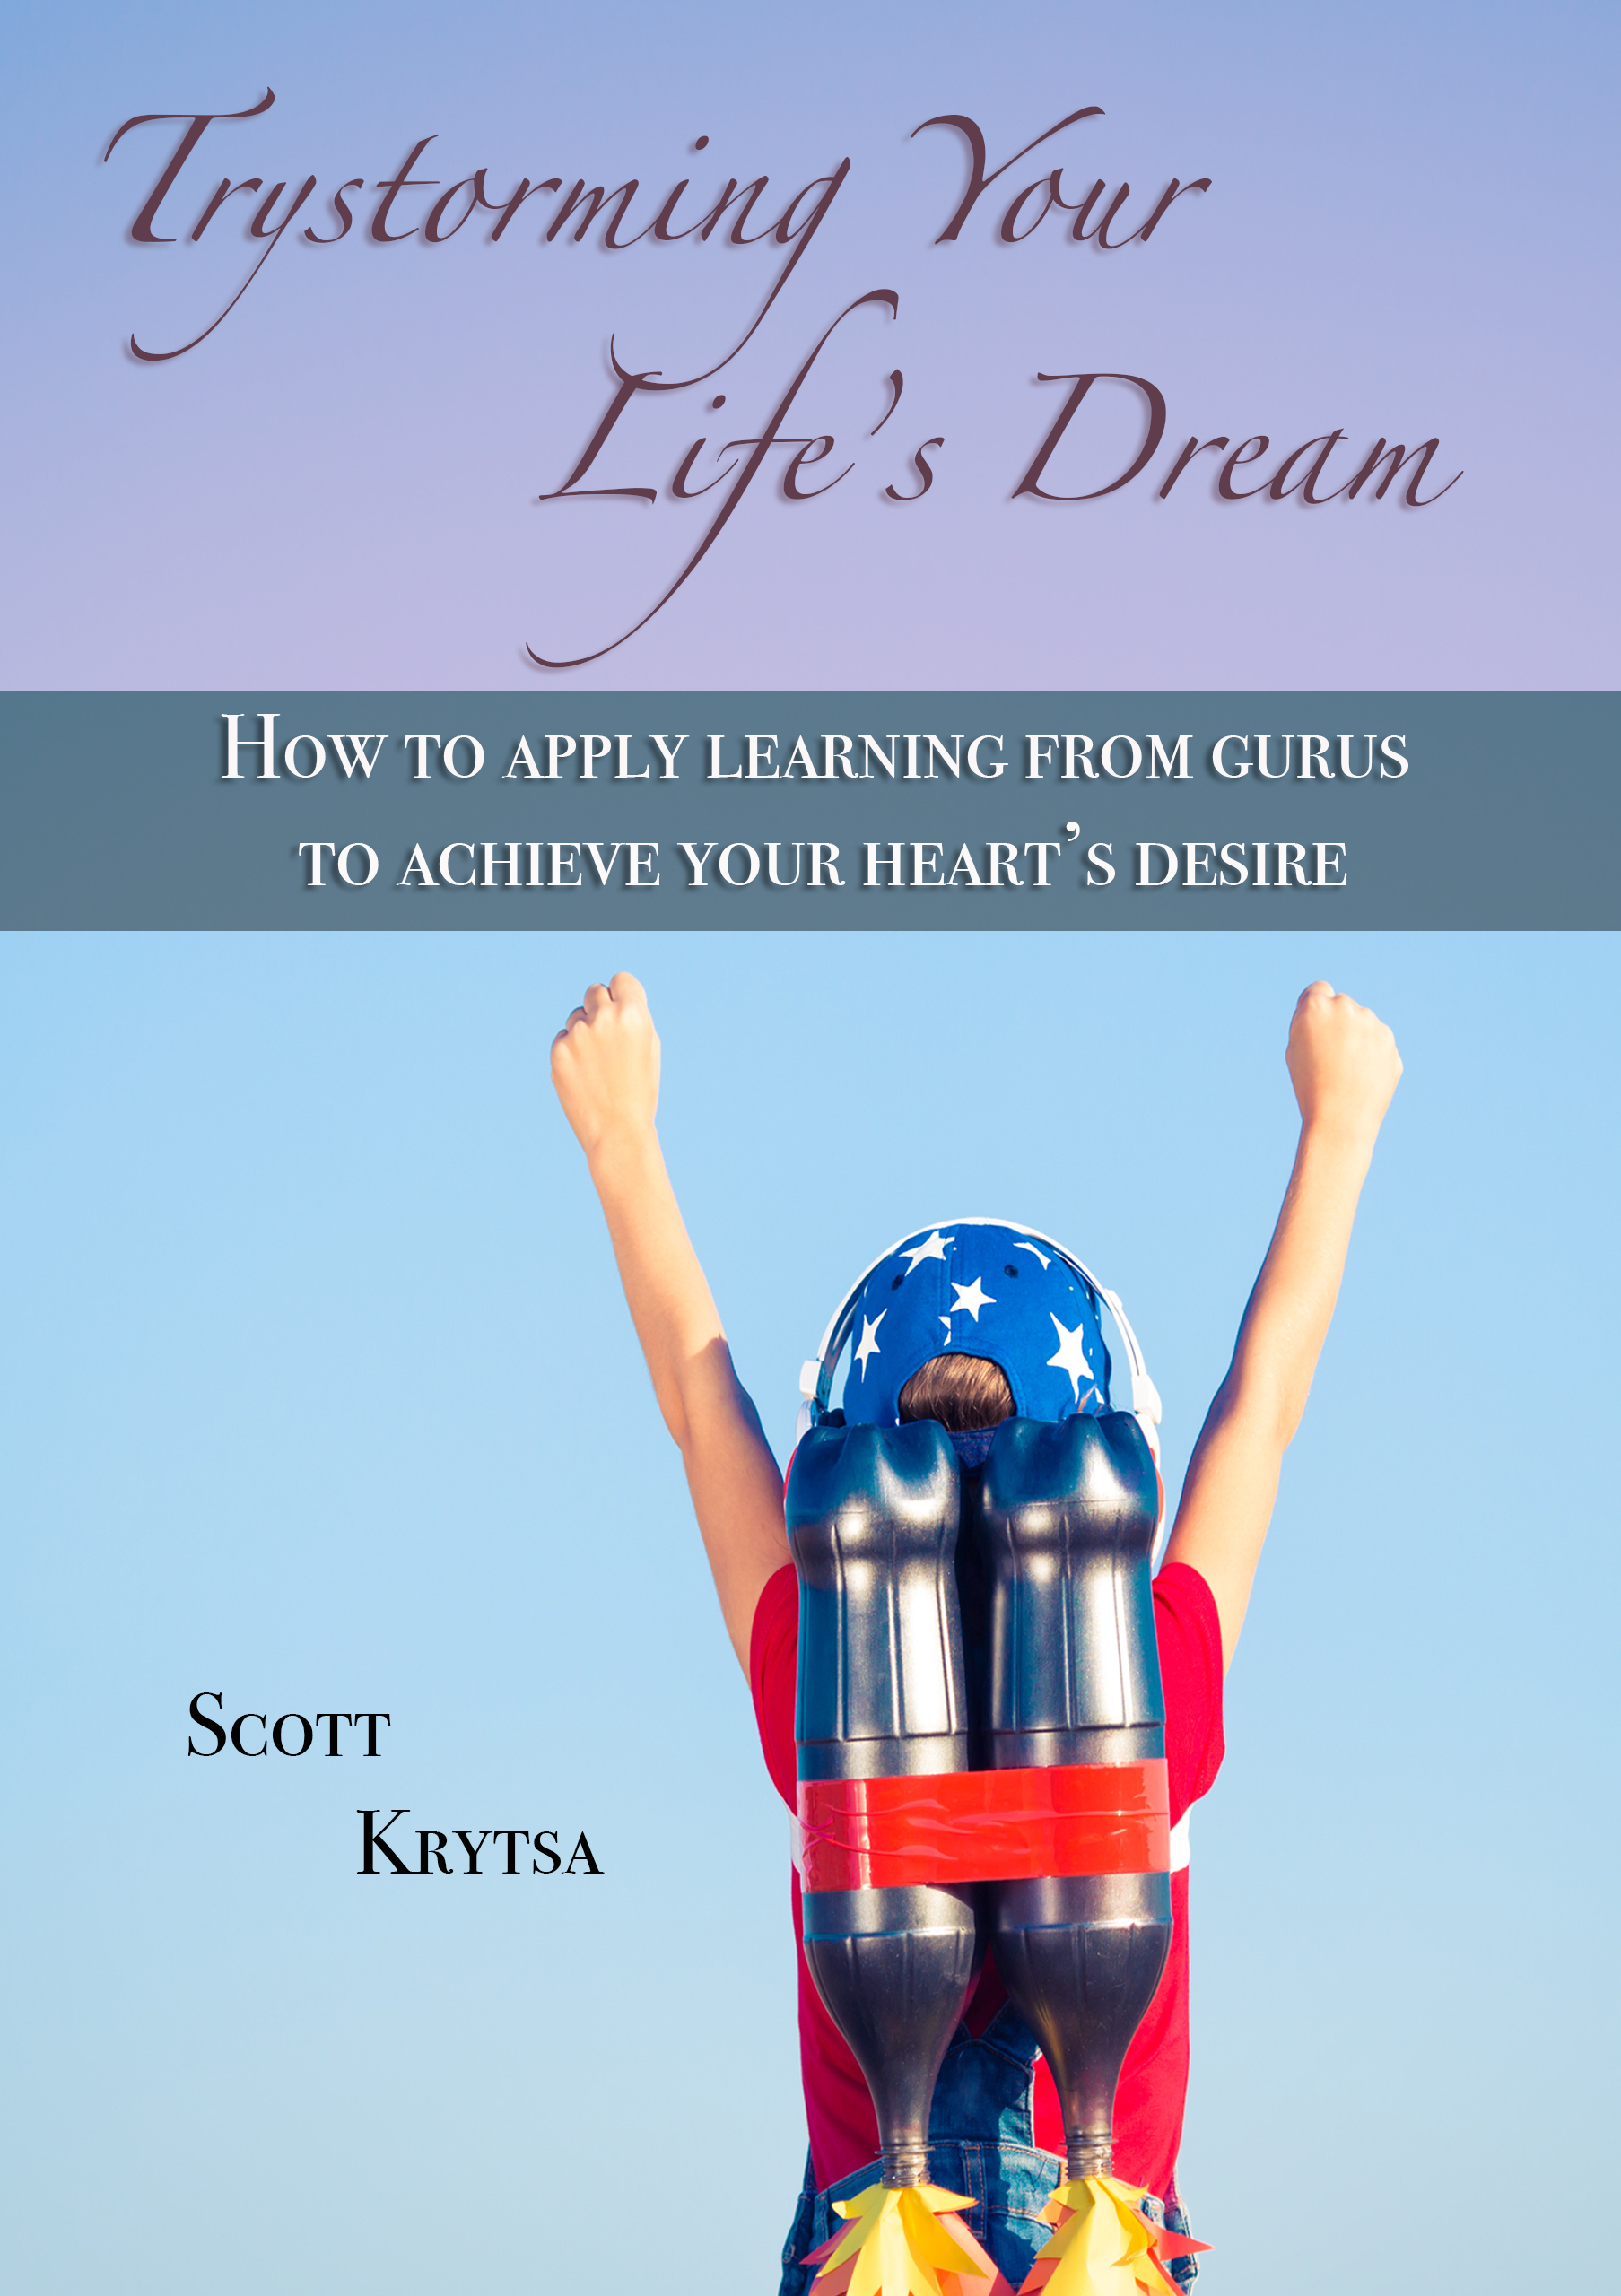 Trystorming Your Life's Dream